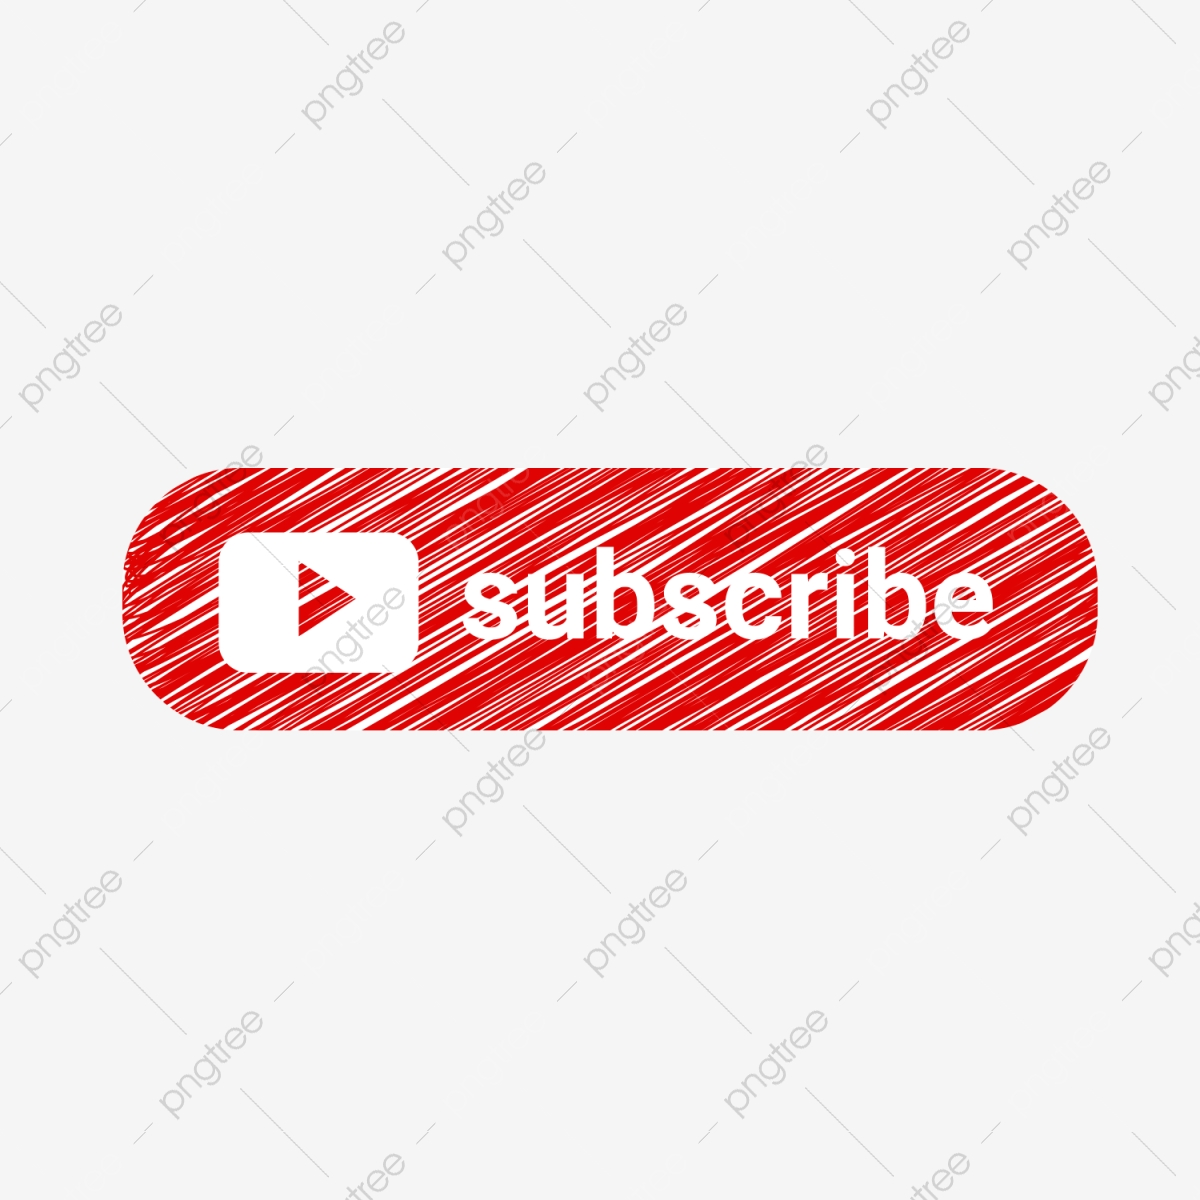 Youtube Subscribe Png Scribbled Hand Painted Youtube Youtube Logo Youtube Subscribe Png Transparent Clipart Image And Psd File For Free Download This clipart image is transparent backgroud and png format. https pngtree com freepng youtube subscribe png scribbled hand painted 5082610 html